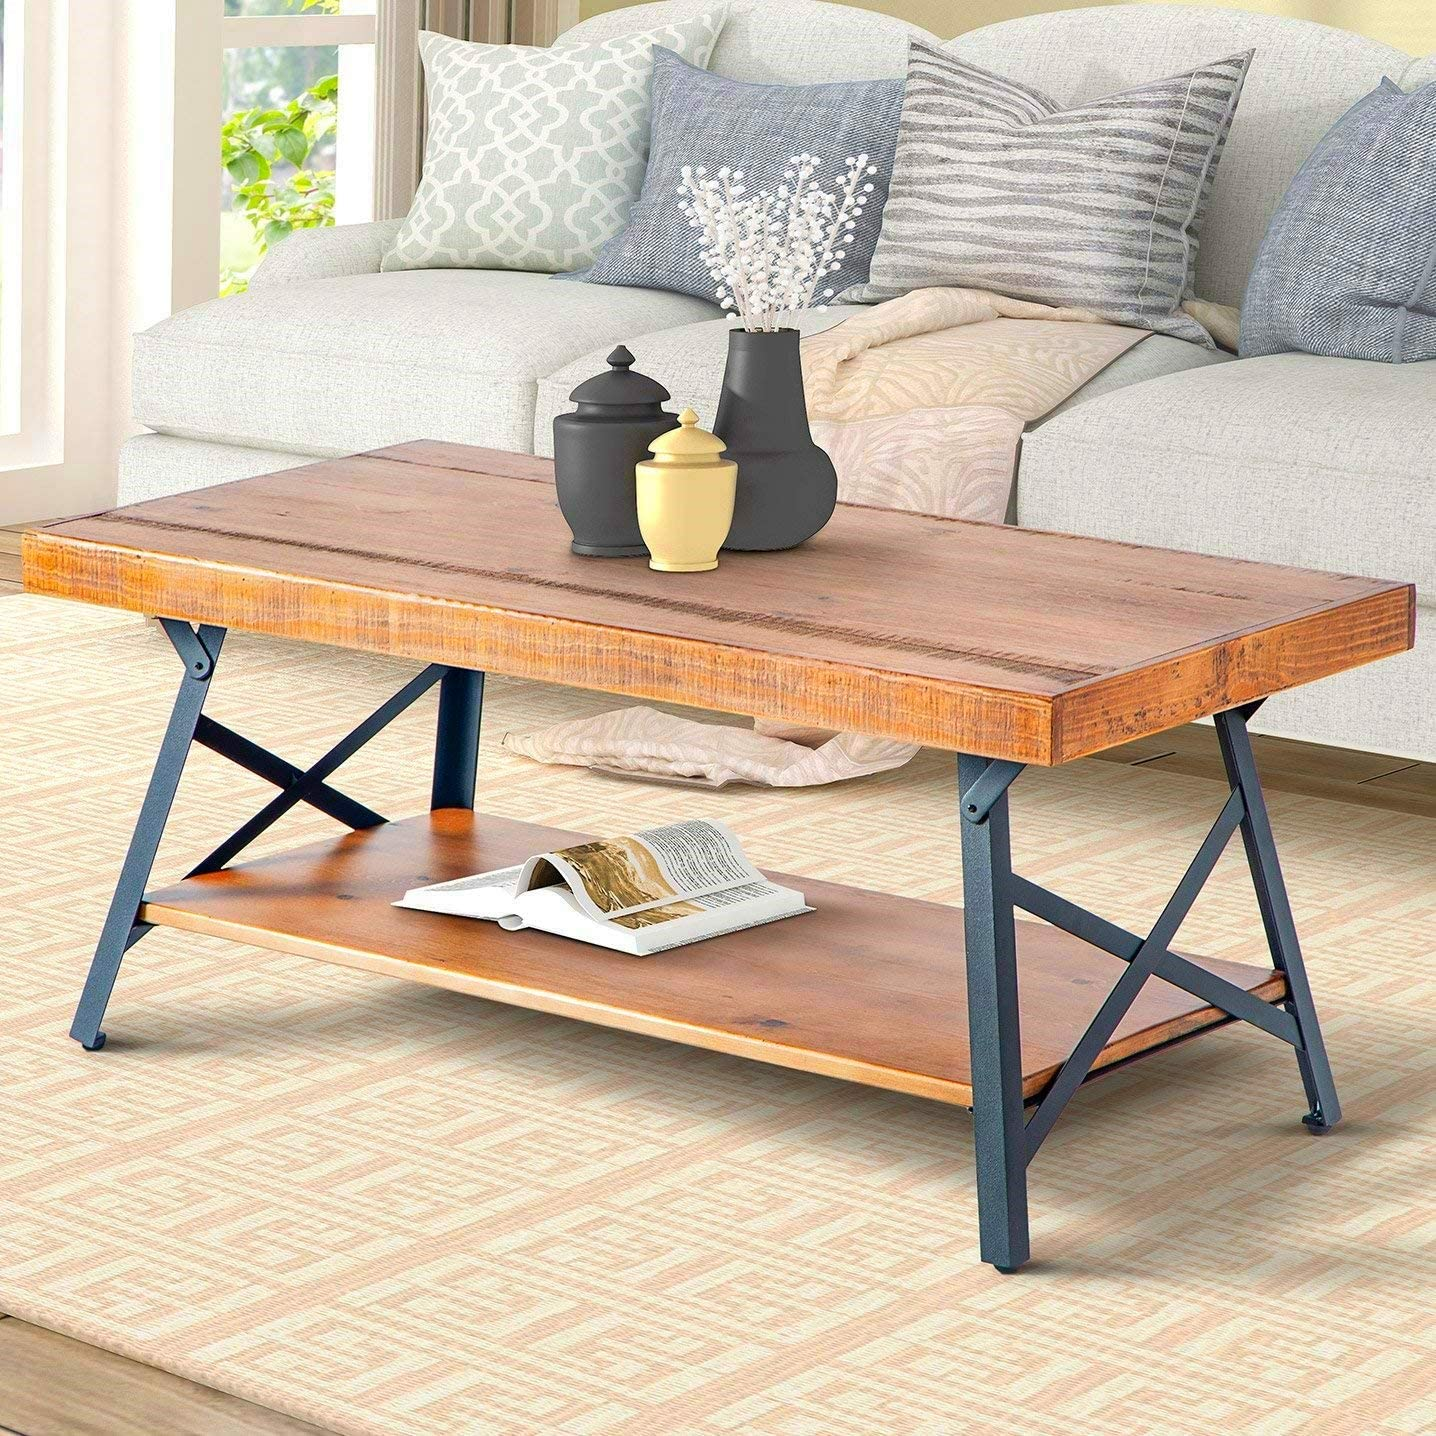 Coffe Tables for Living Room, Norcia Industrial Tea Table with Thicker Solid Wood Table Top Beige